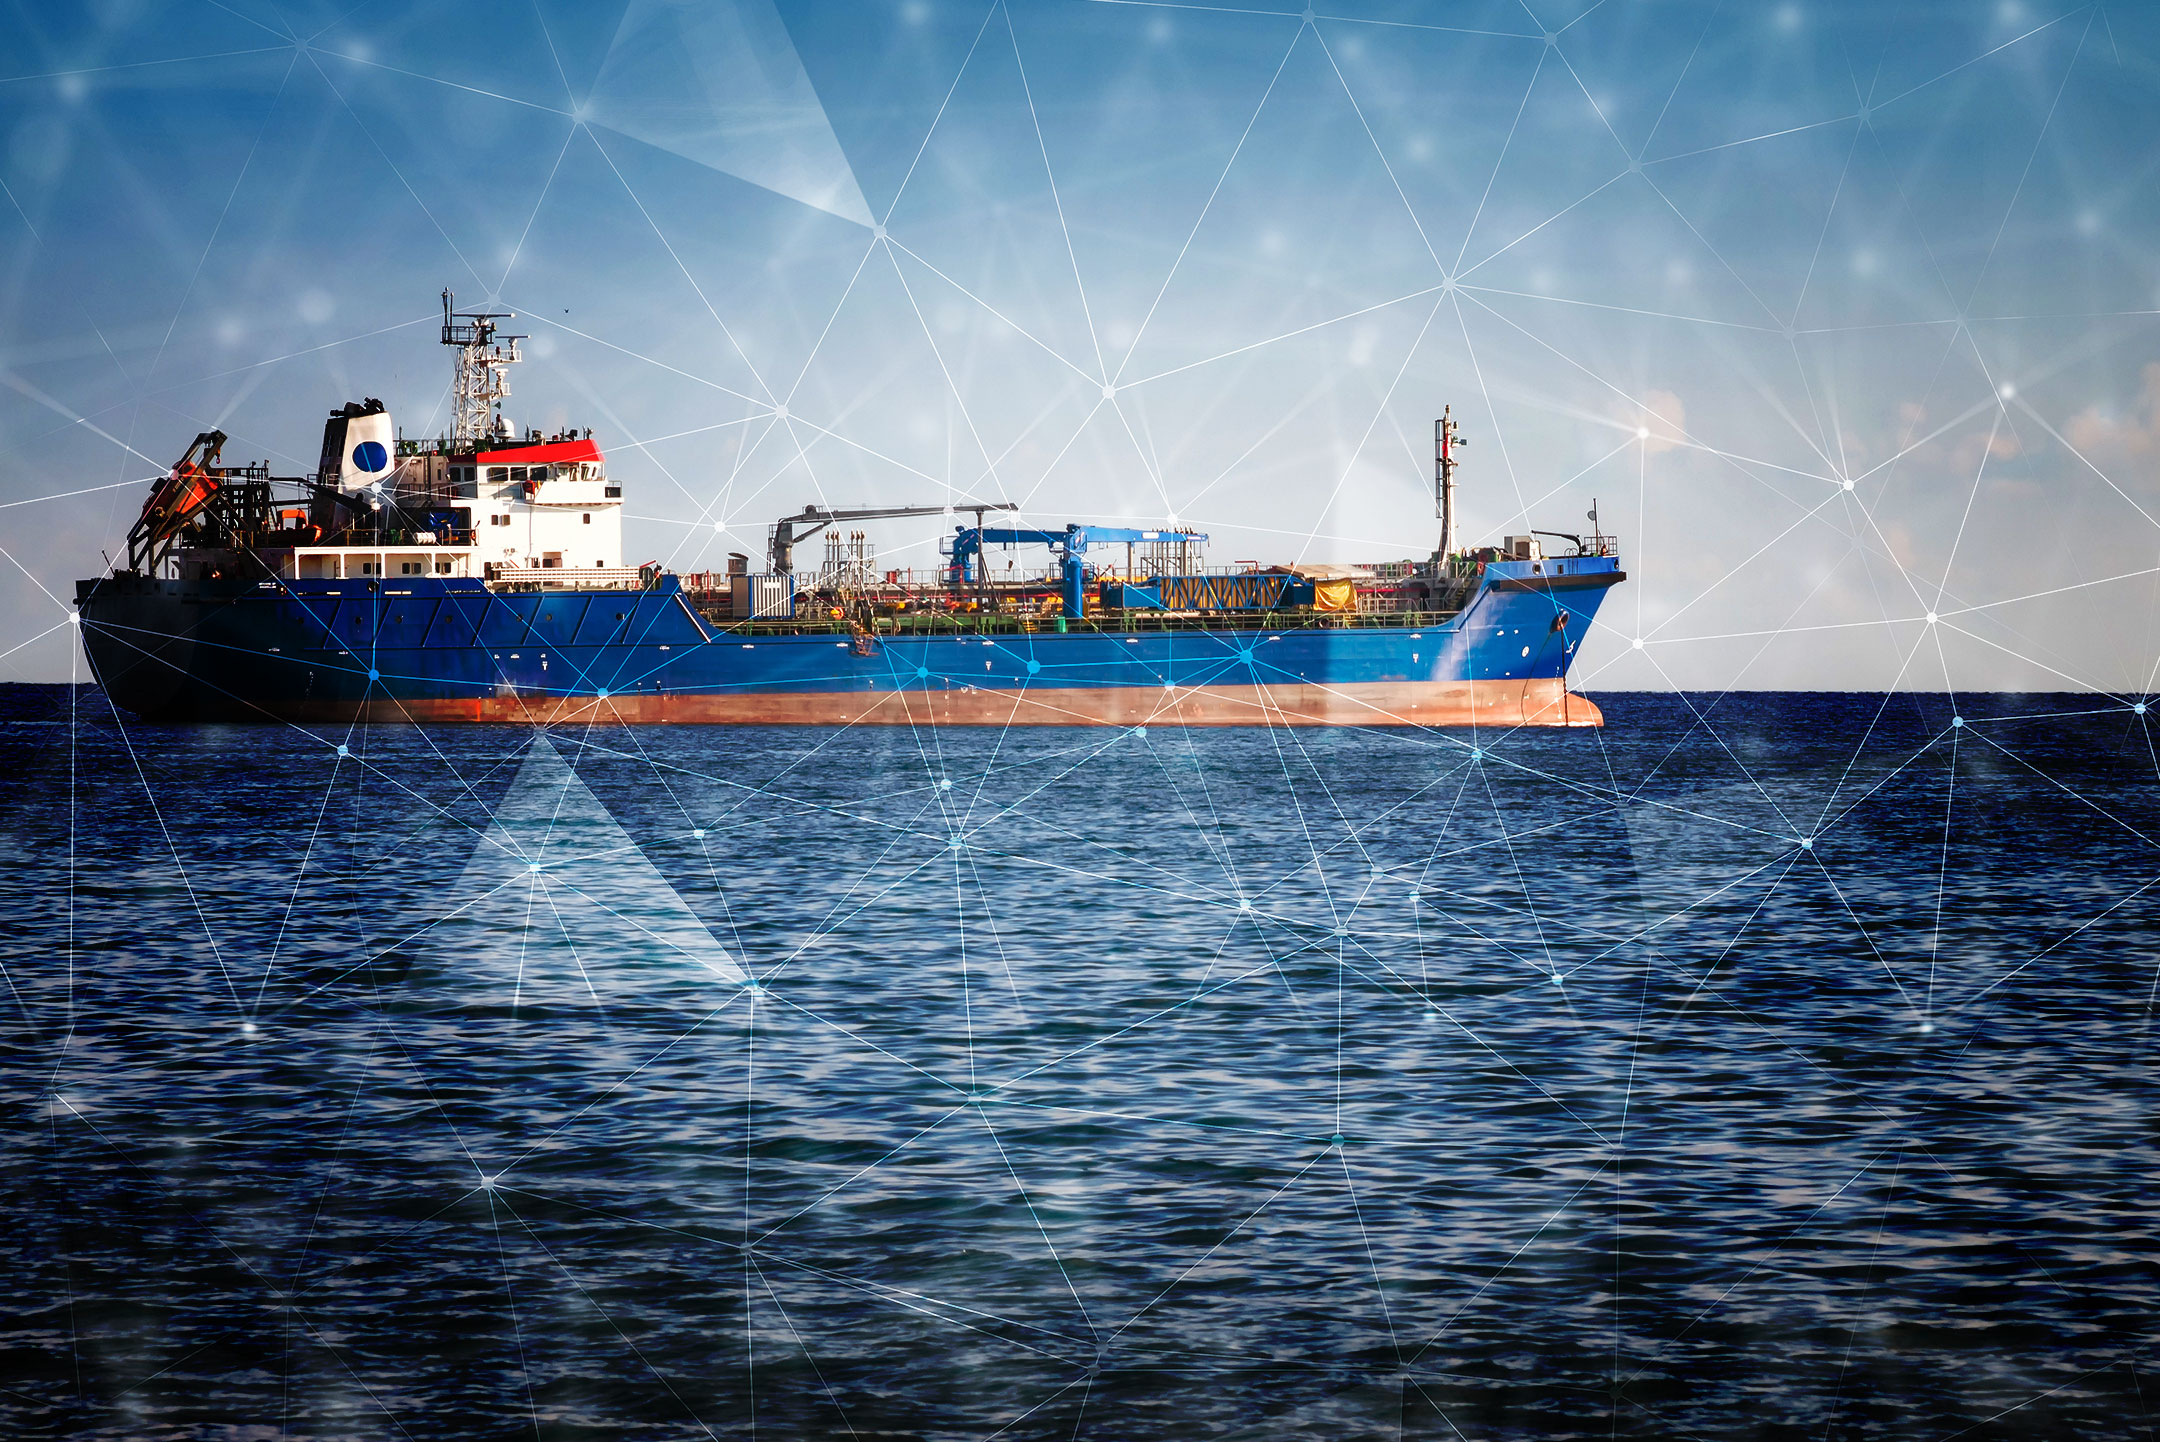 Key takeaways from 3 recent cyber attacks in shipping